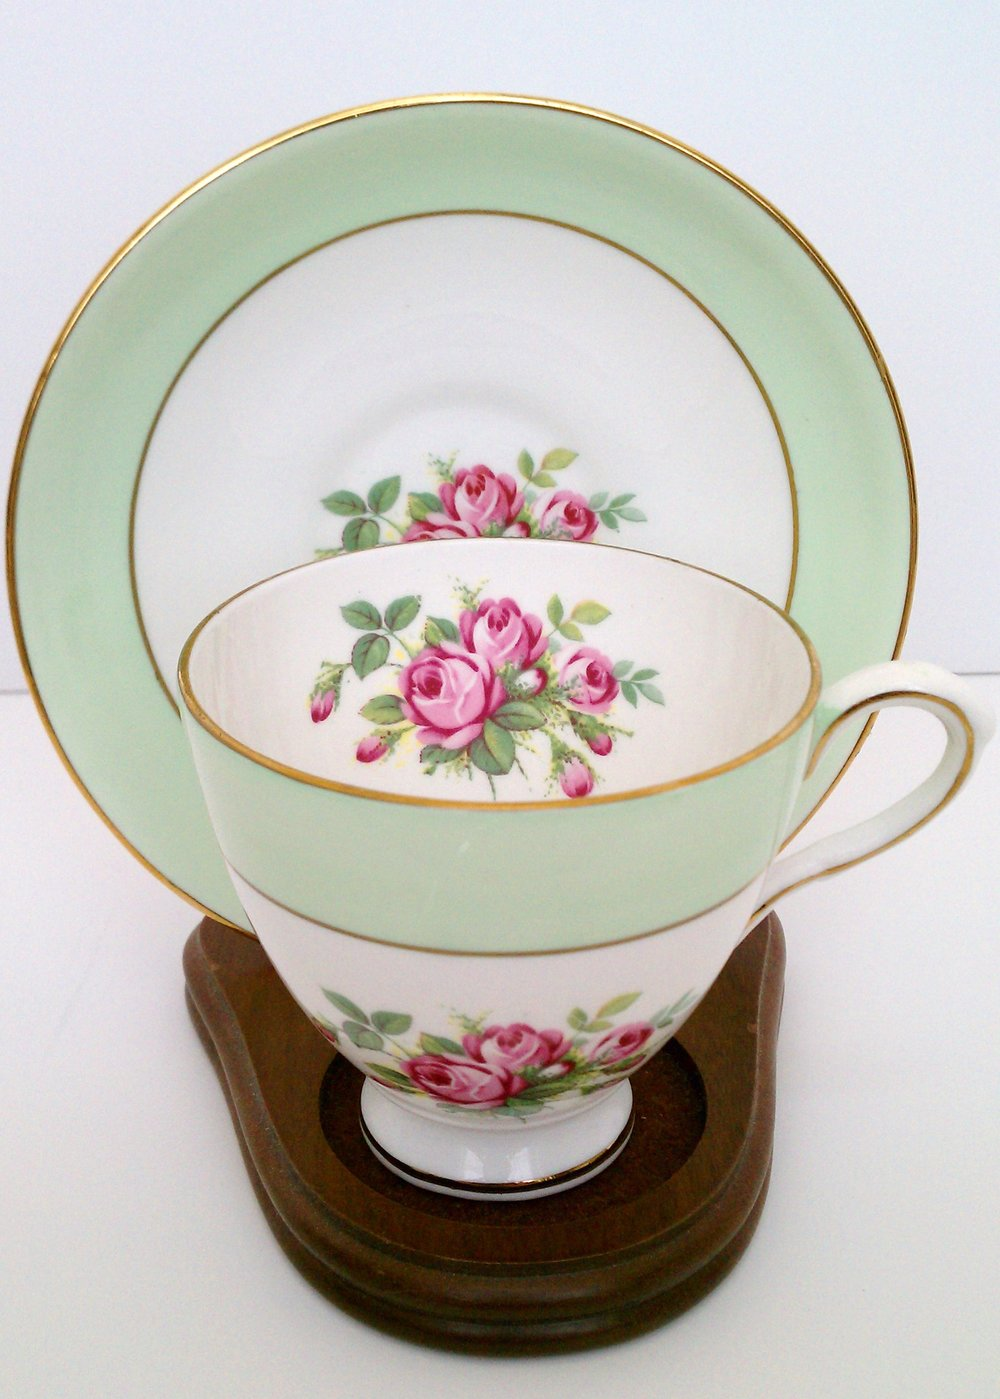 Green and white cup and saucer with pink rose motif ... Royal Taunton bone china made in England